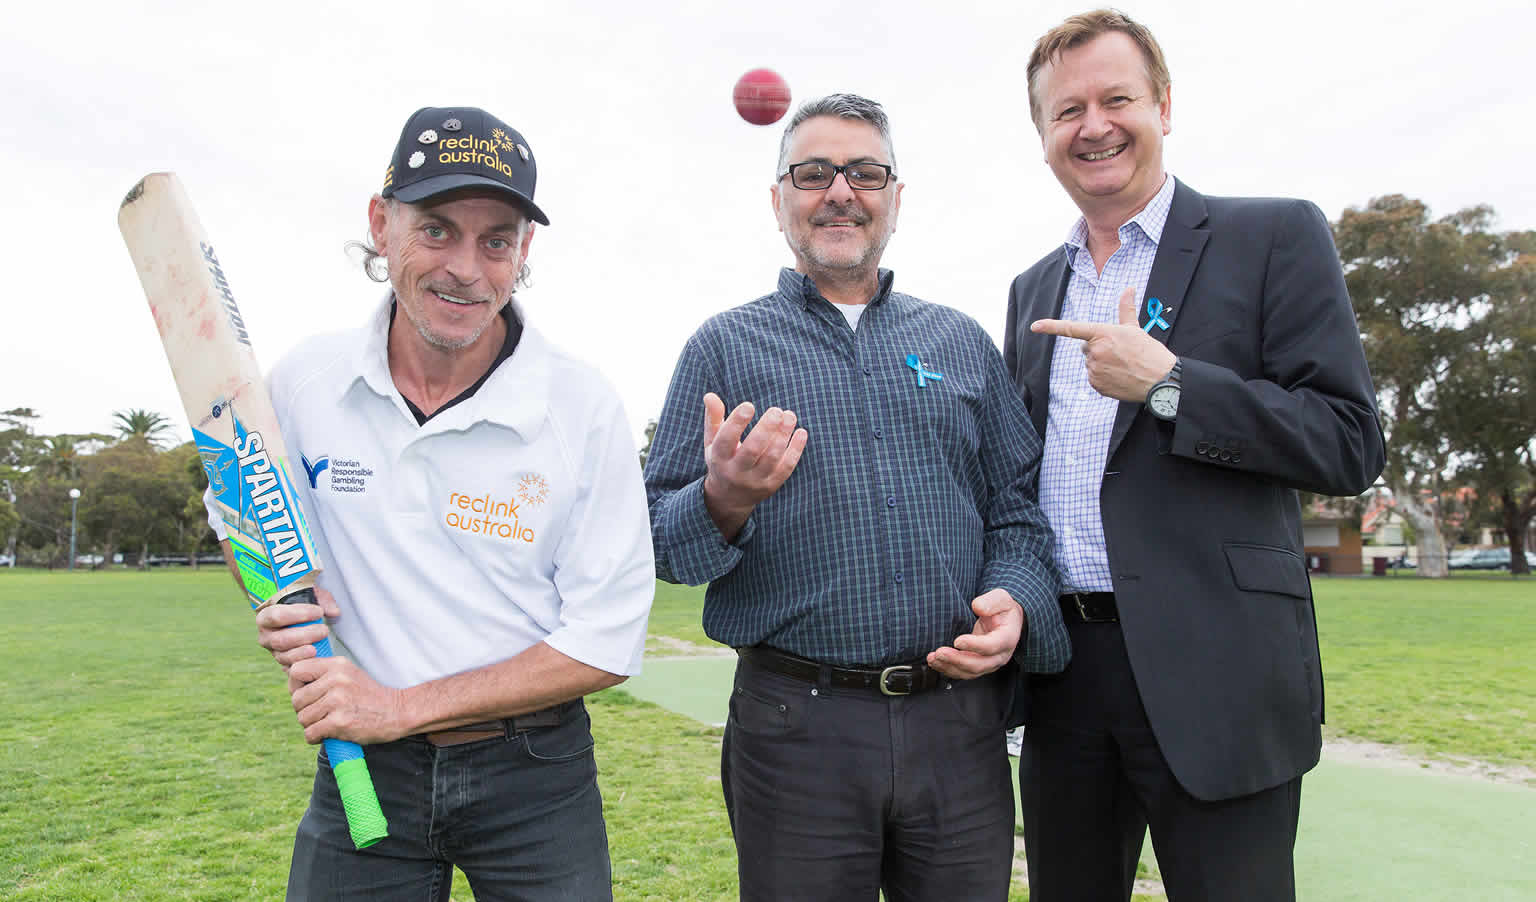 (L to R) Reclink Australia ambassador Brian Presnell,  foundation chief executive Serge Sardo, Reclink Australia chief executive John Ballis, photo: Paul Jeffers